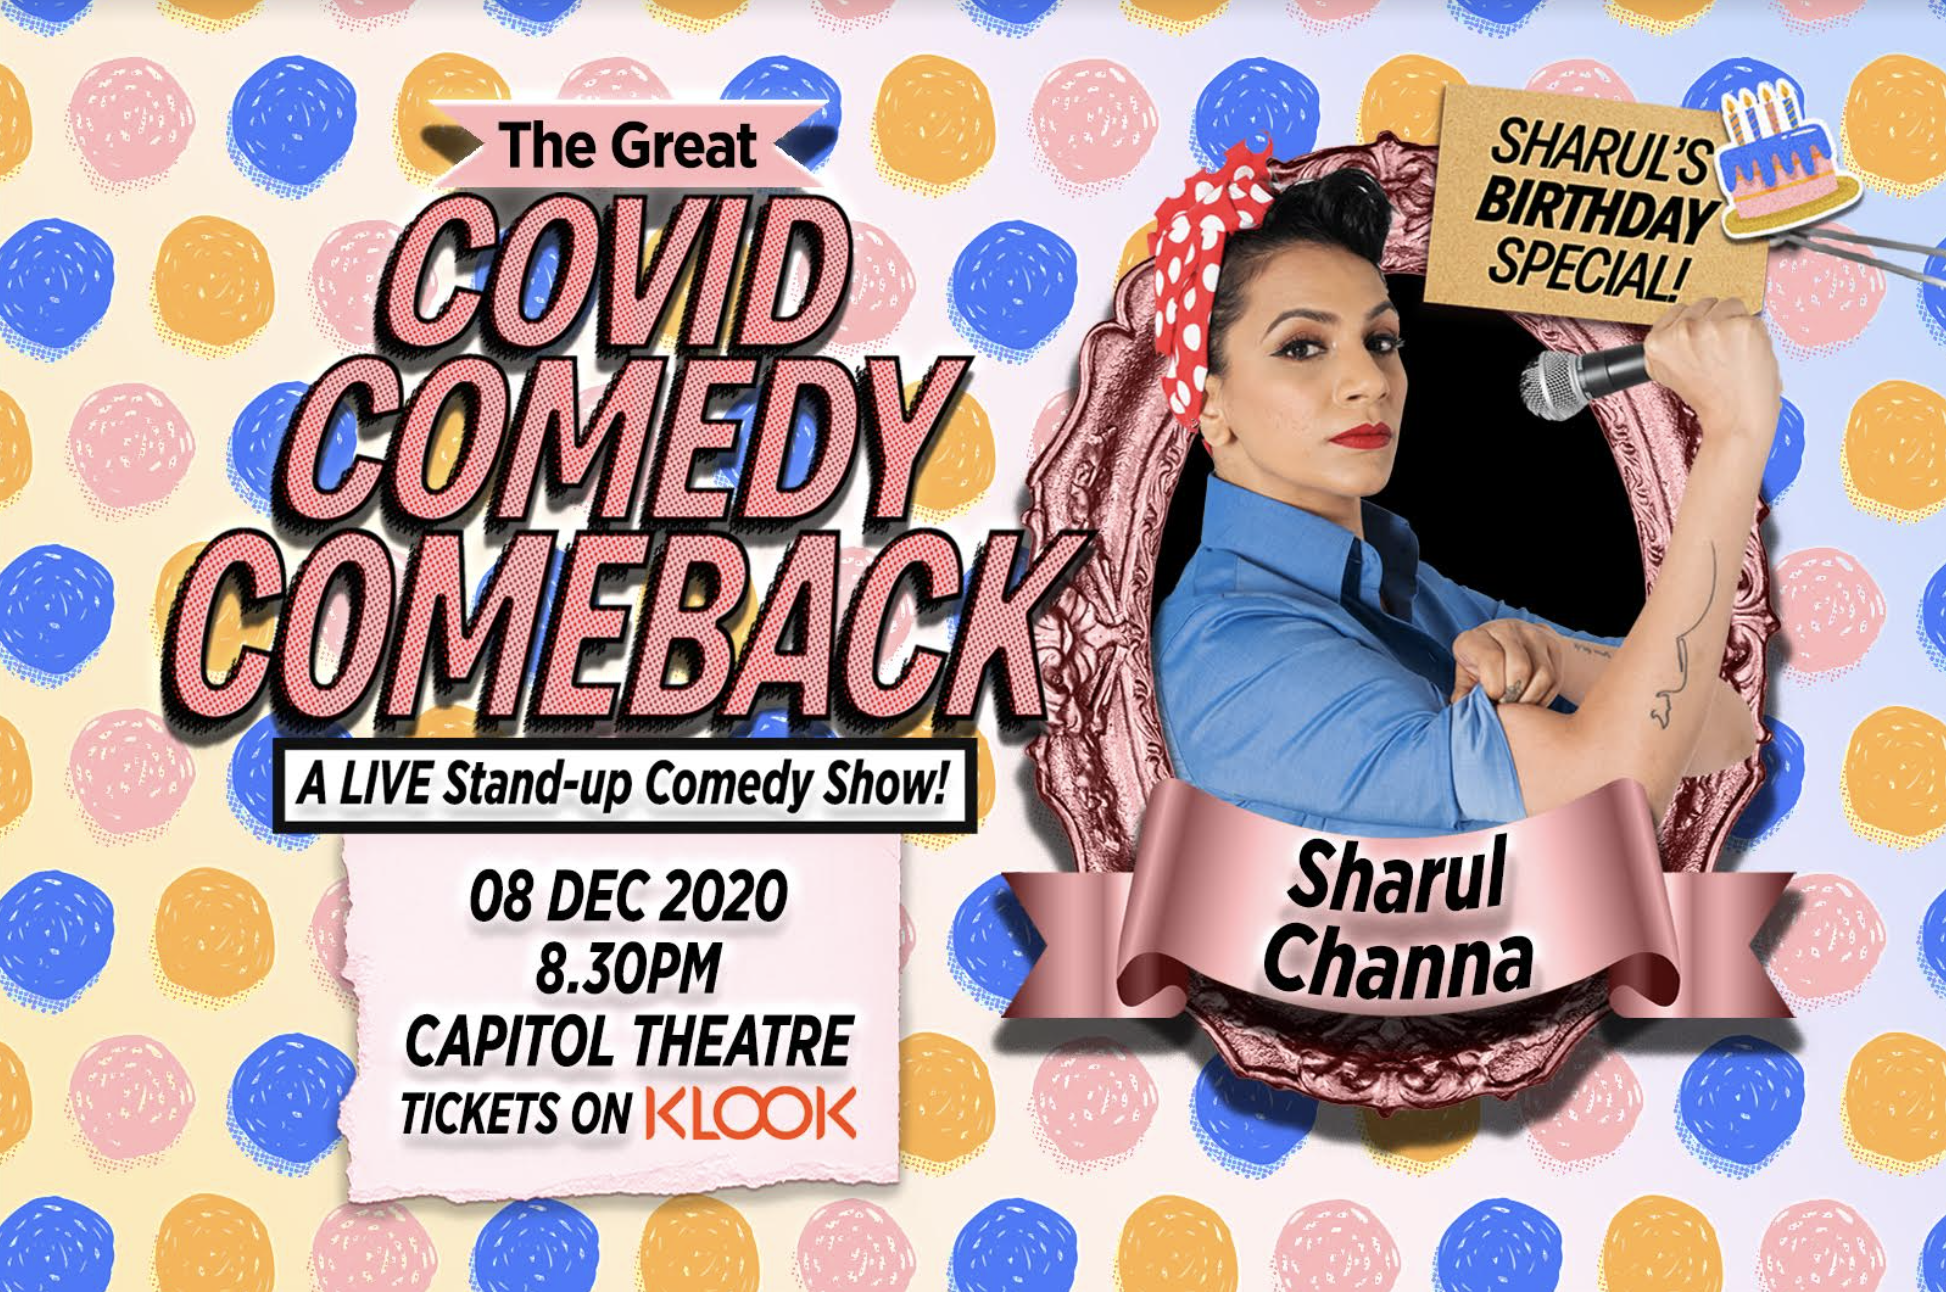 Catch 'The Great Covid Comedy Comeback' at the Capitol Theatre on December 8, at 8.30pm. Photo courtesy: Sharul Channa